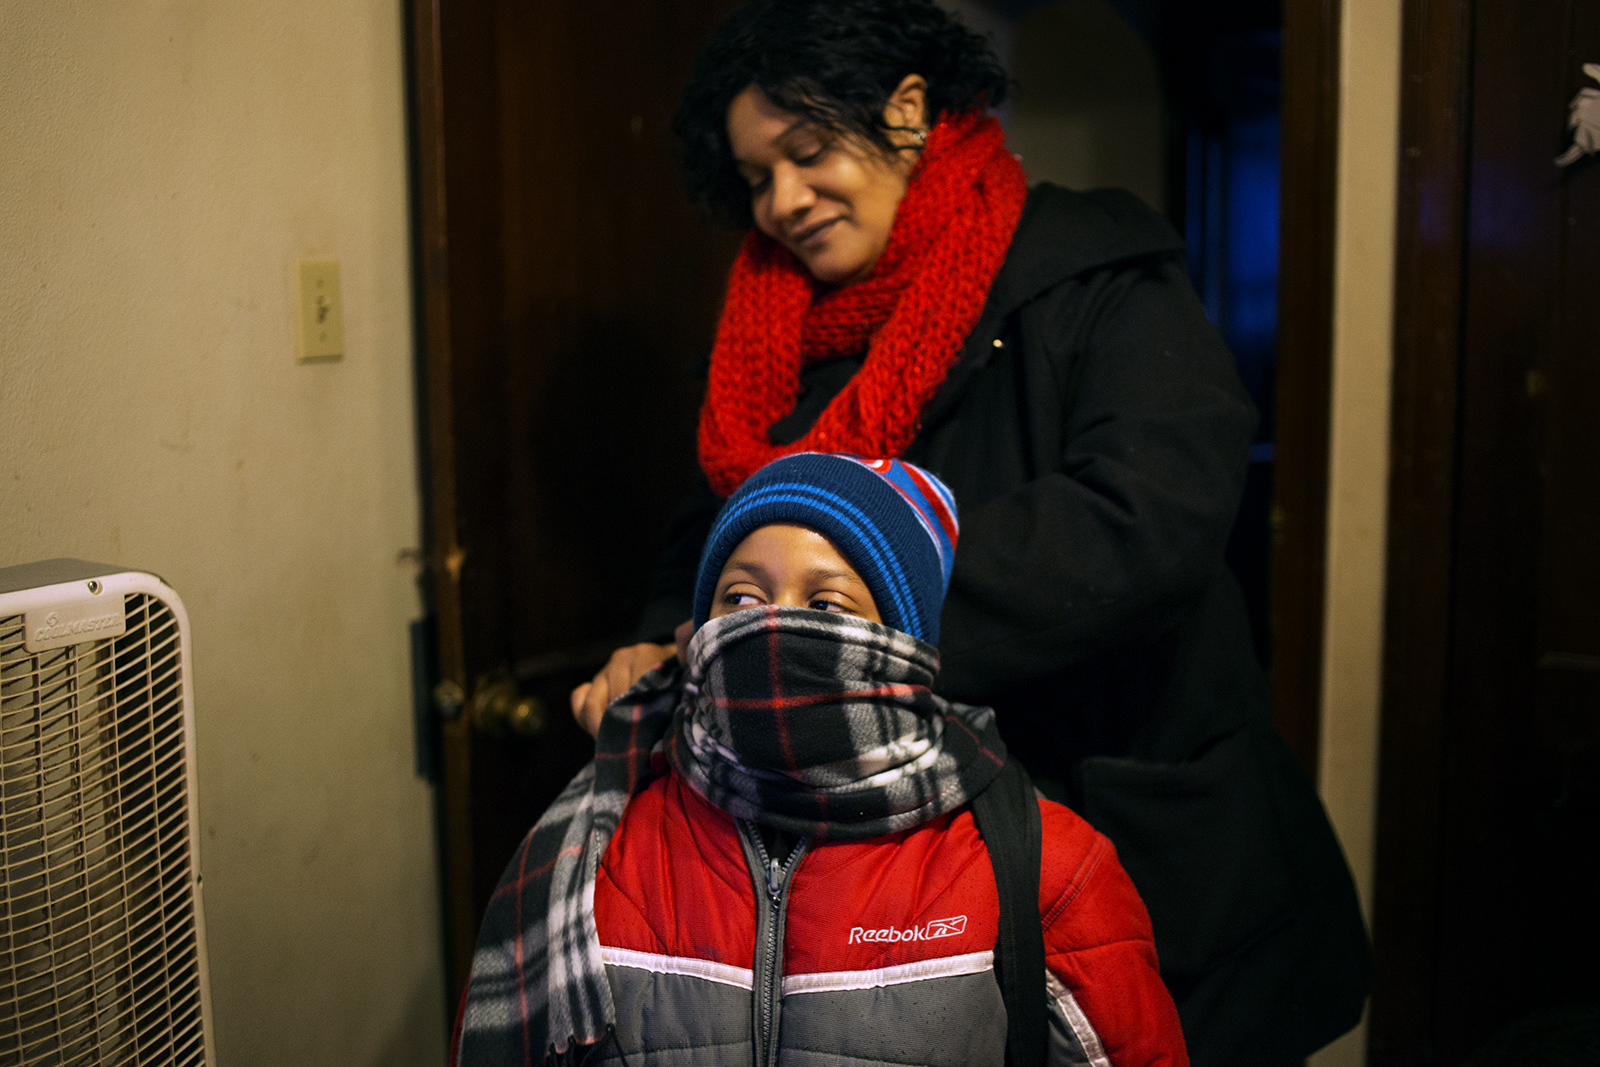 Keyanna Fields, helps her 8-year-old son Johnny with his scarf before their walk to the bus stop. Last year, when he was in first grade, Johnny spent about two months out of school because of suspensions. CAROLINA HIDALGO   ST. LOUIS PUBLIC RADIO